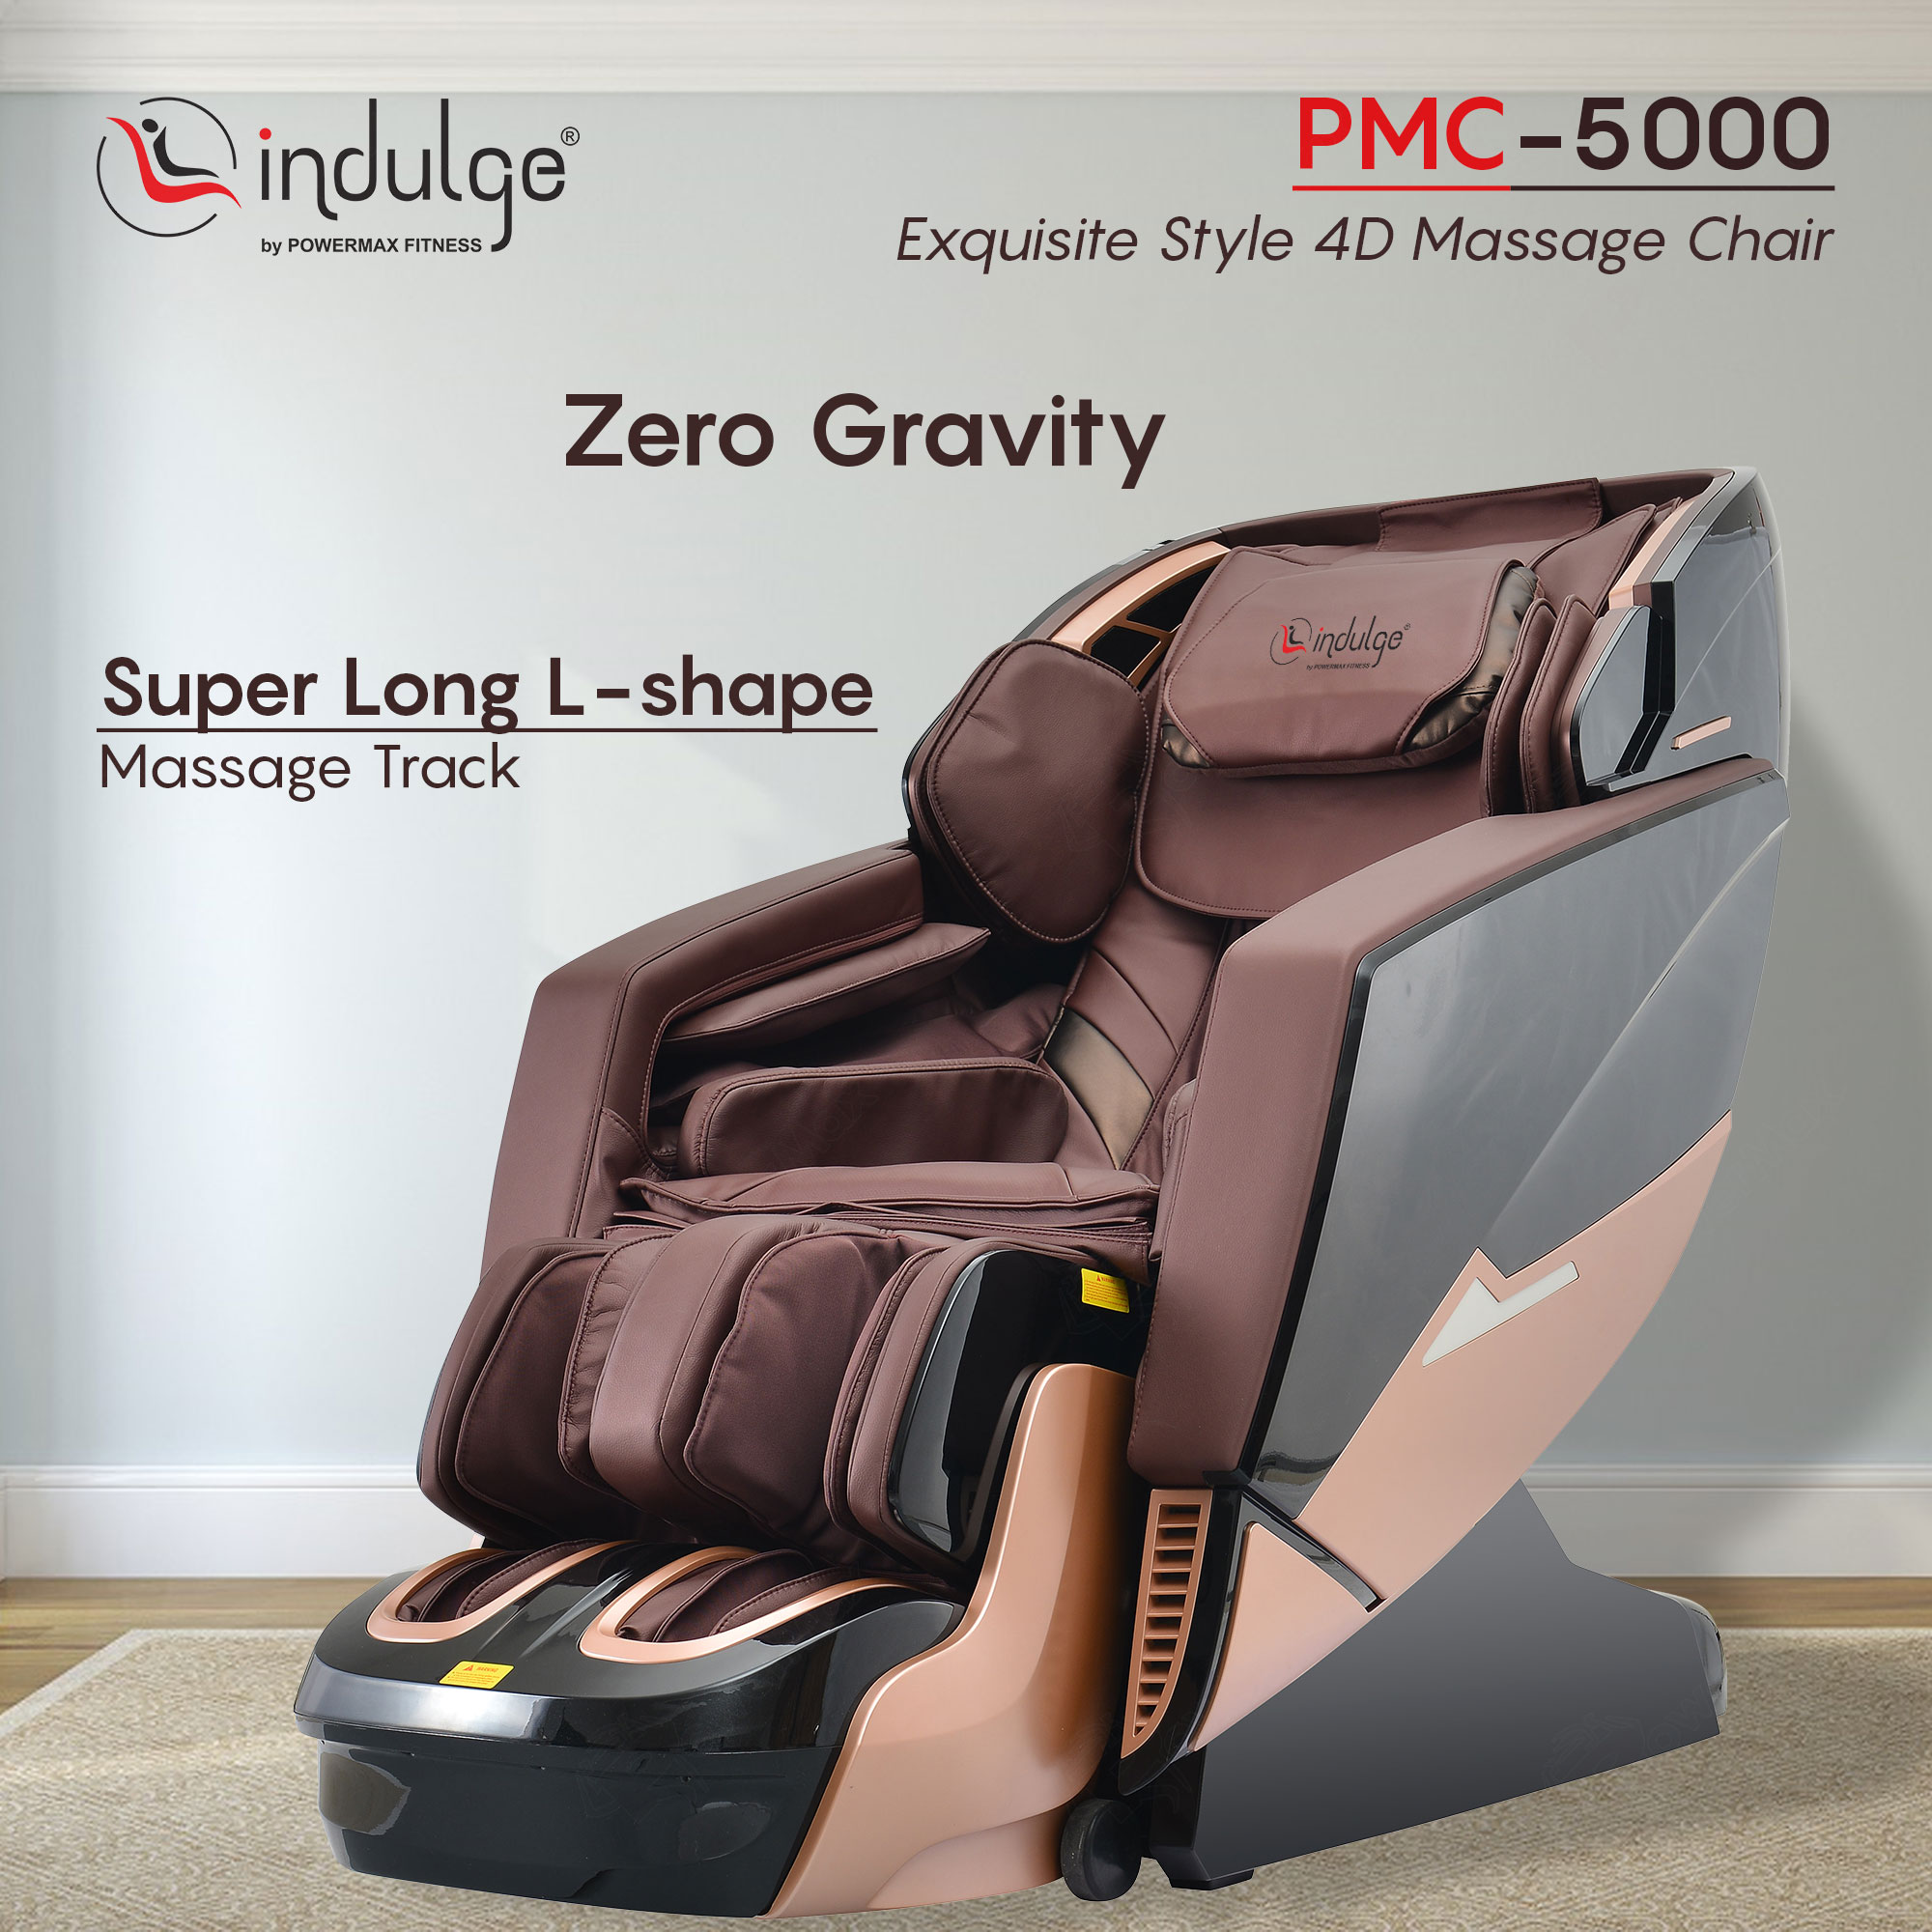 Indulge PMC-5000 Exquisite Style 4D Massage Chair